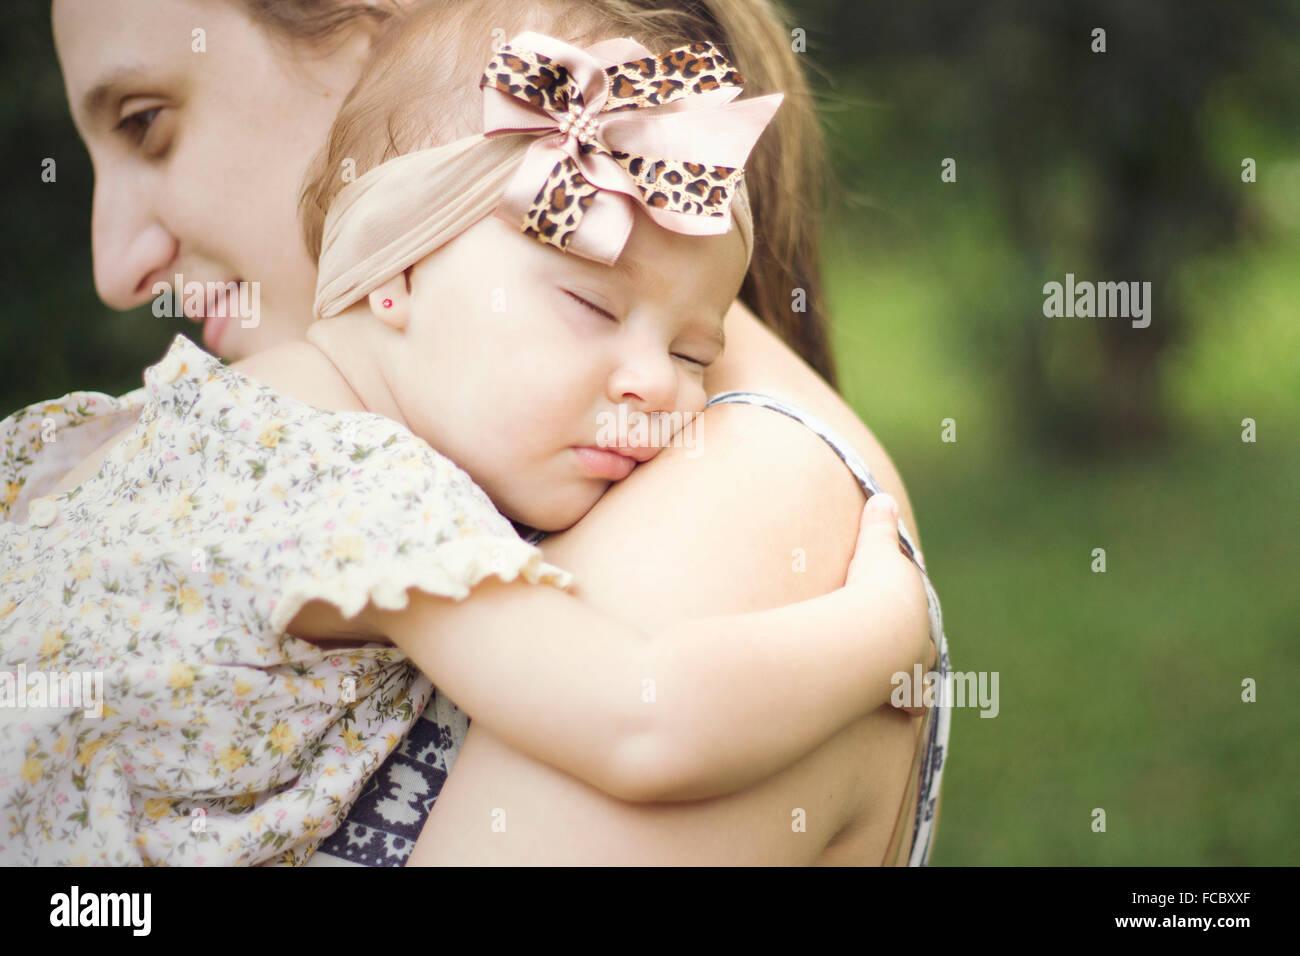 Portrait Of A Mother Carrying Baby Outdoors Photo Stock